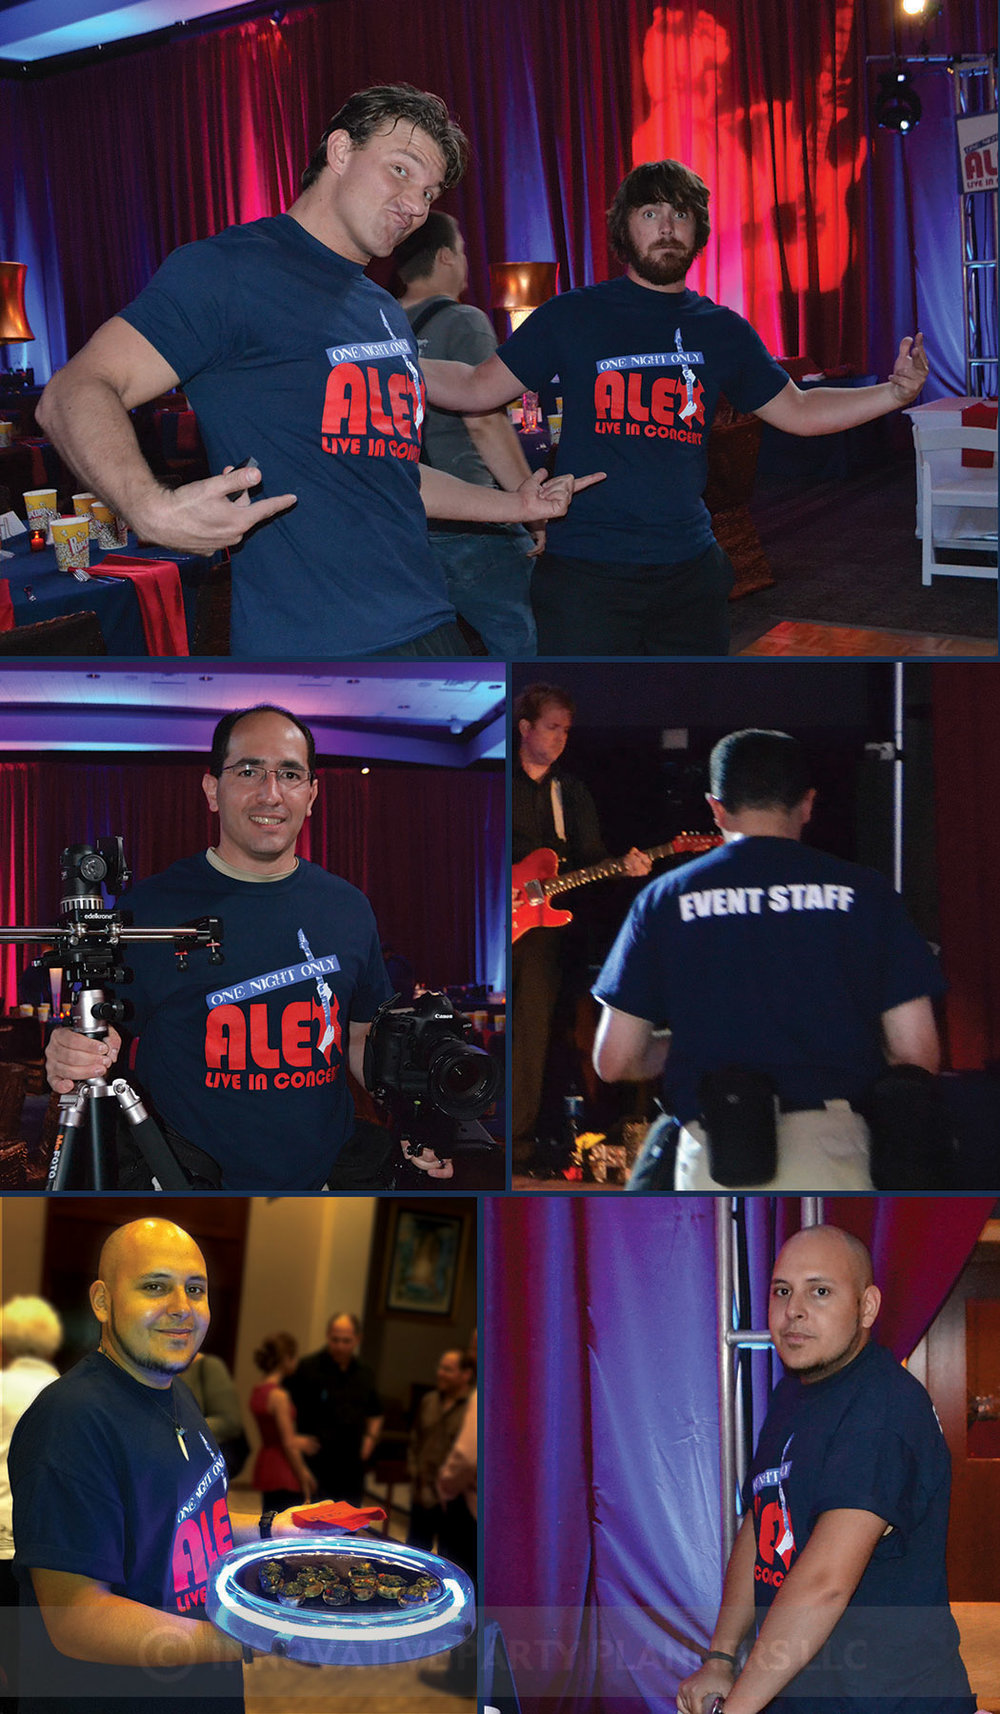 Alex Live in Concert   Staff Concert T-shirts   Bar Mitzvah concert theme, music theme, singing theme, guitar theme, keyboard theme, decor by Innovative Party Planners at Oheb Shalom